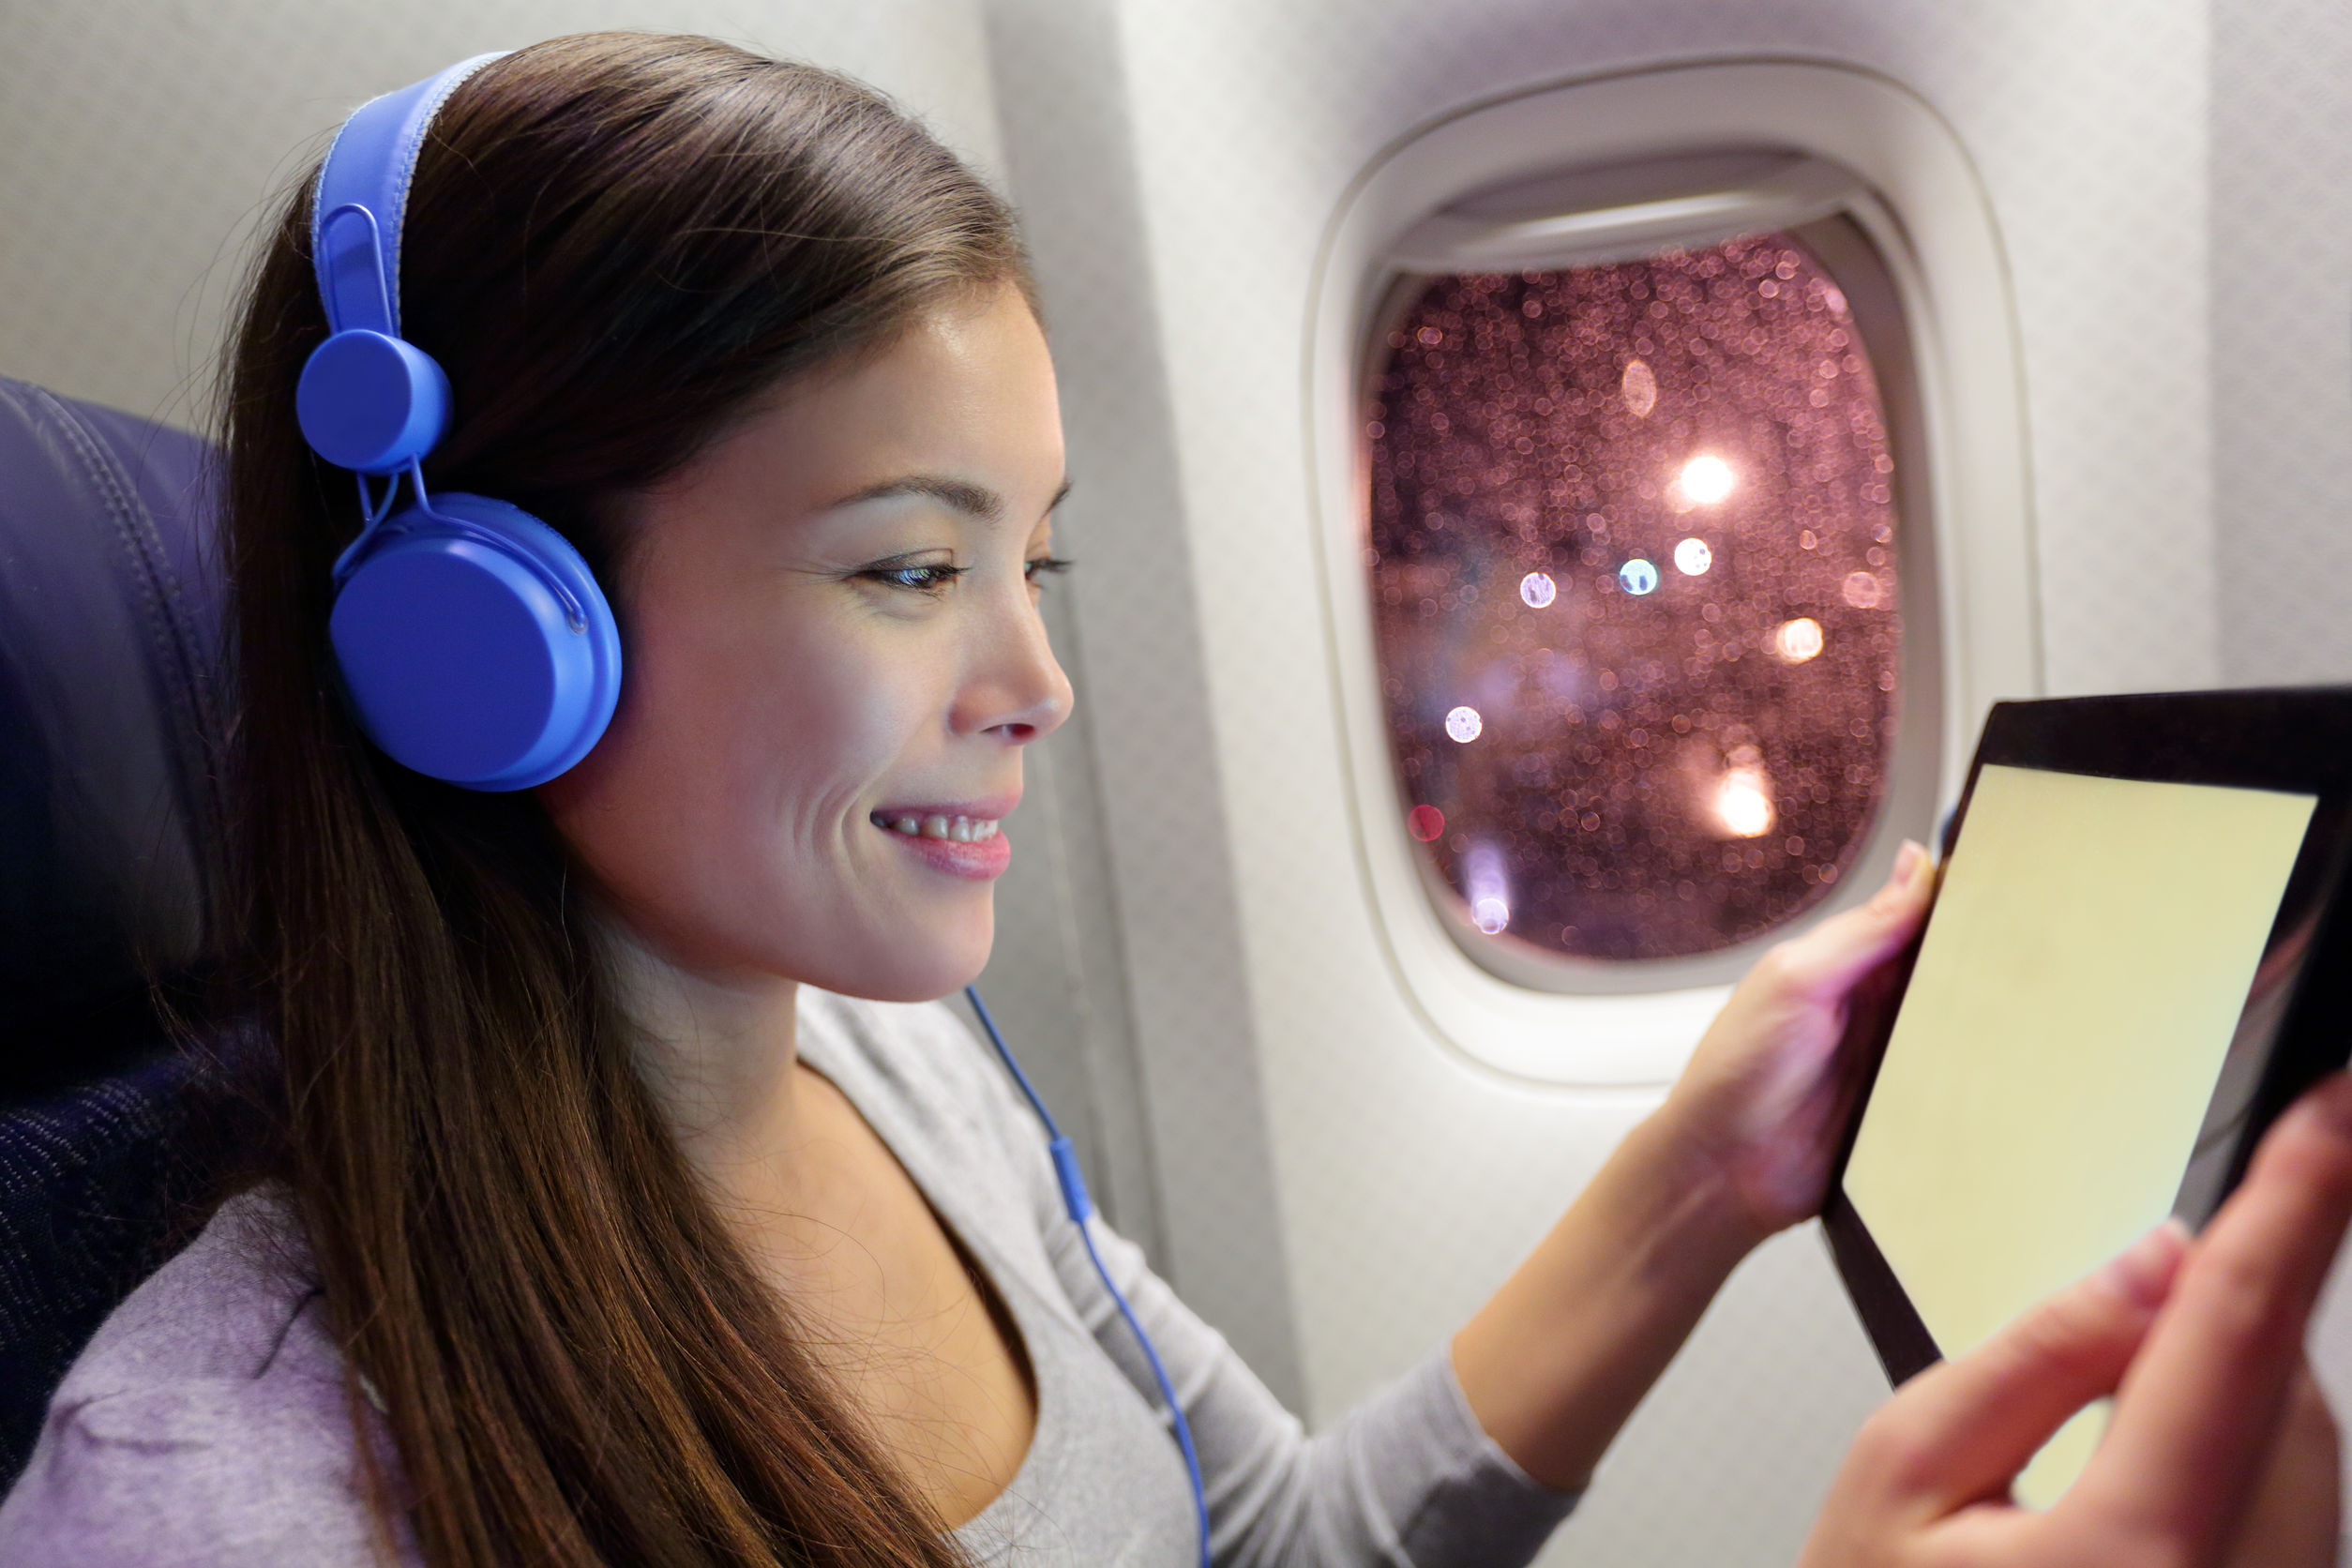 32105389 - passenger in airplane using tablet computer. woman in plane cabin using smart device listening to music on headphones.